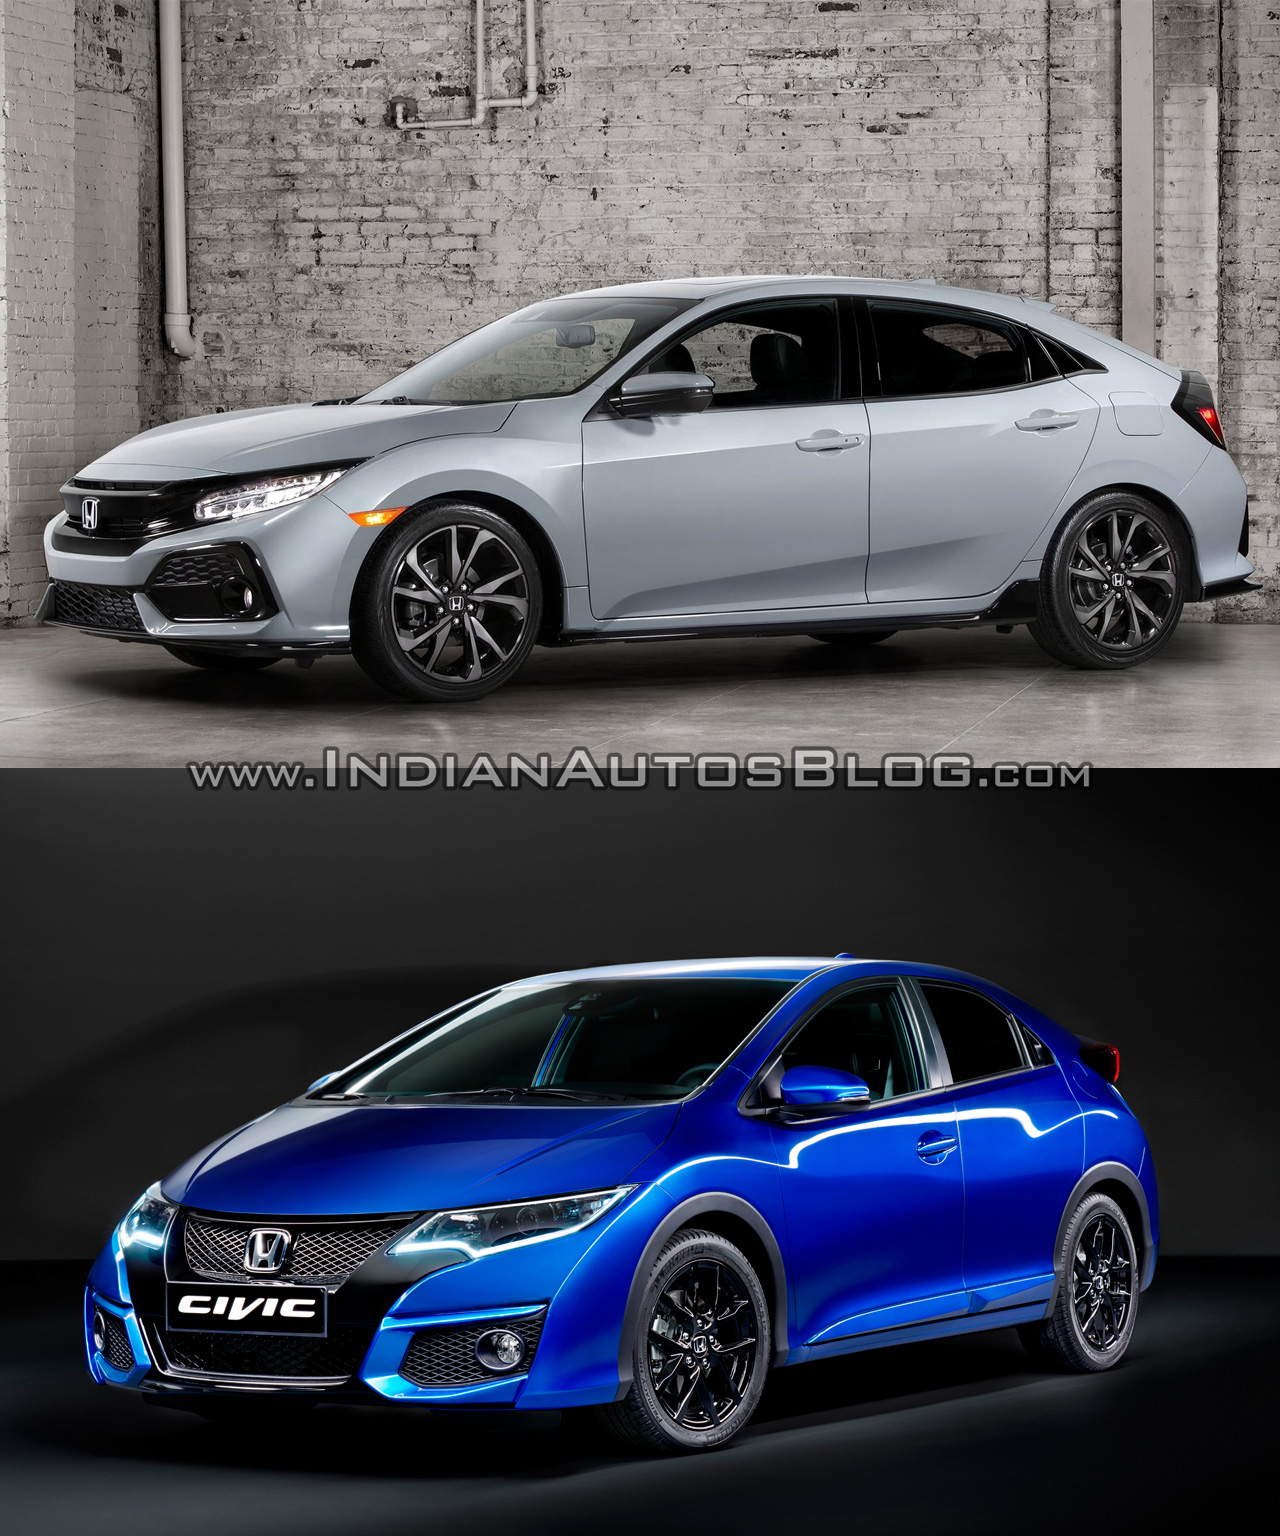 2017 honda civic hatchback vs older model old vs new. Black Bedroom Furniture Sets. Home Design Ideas